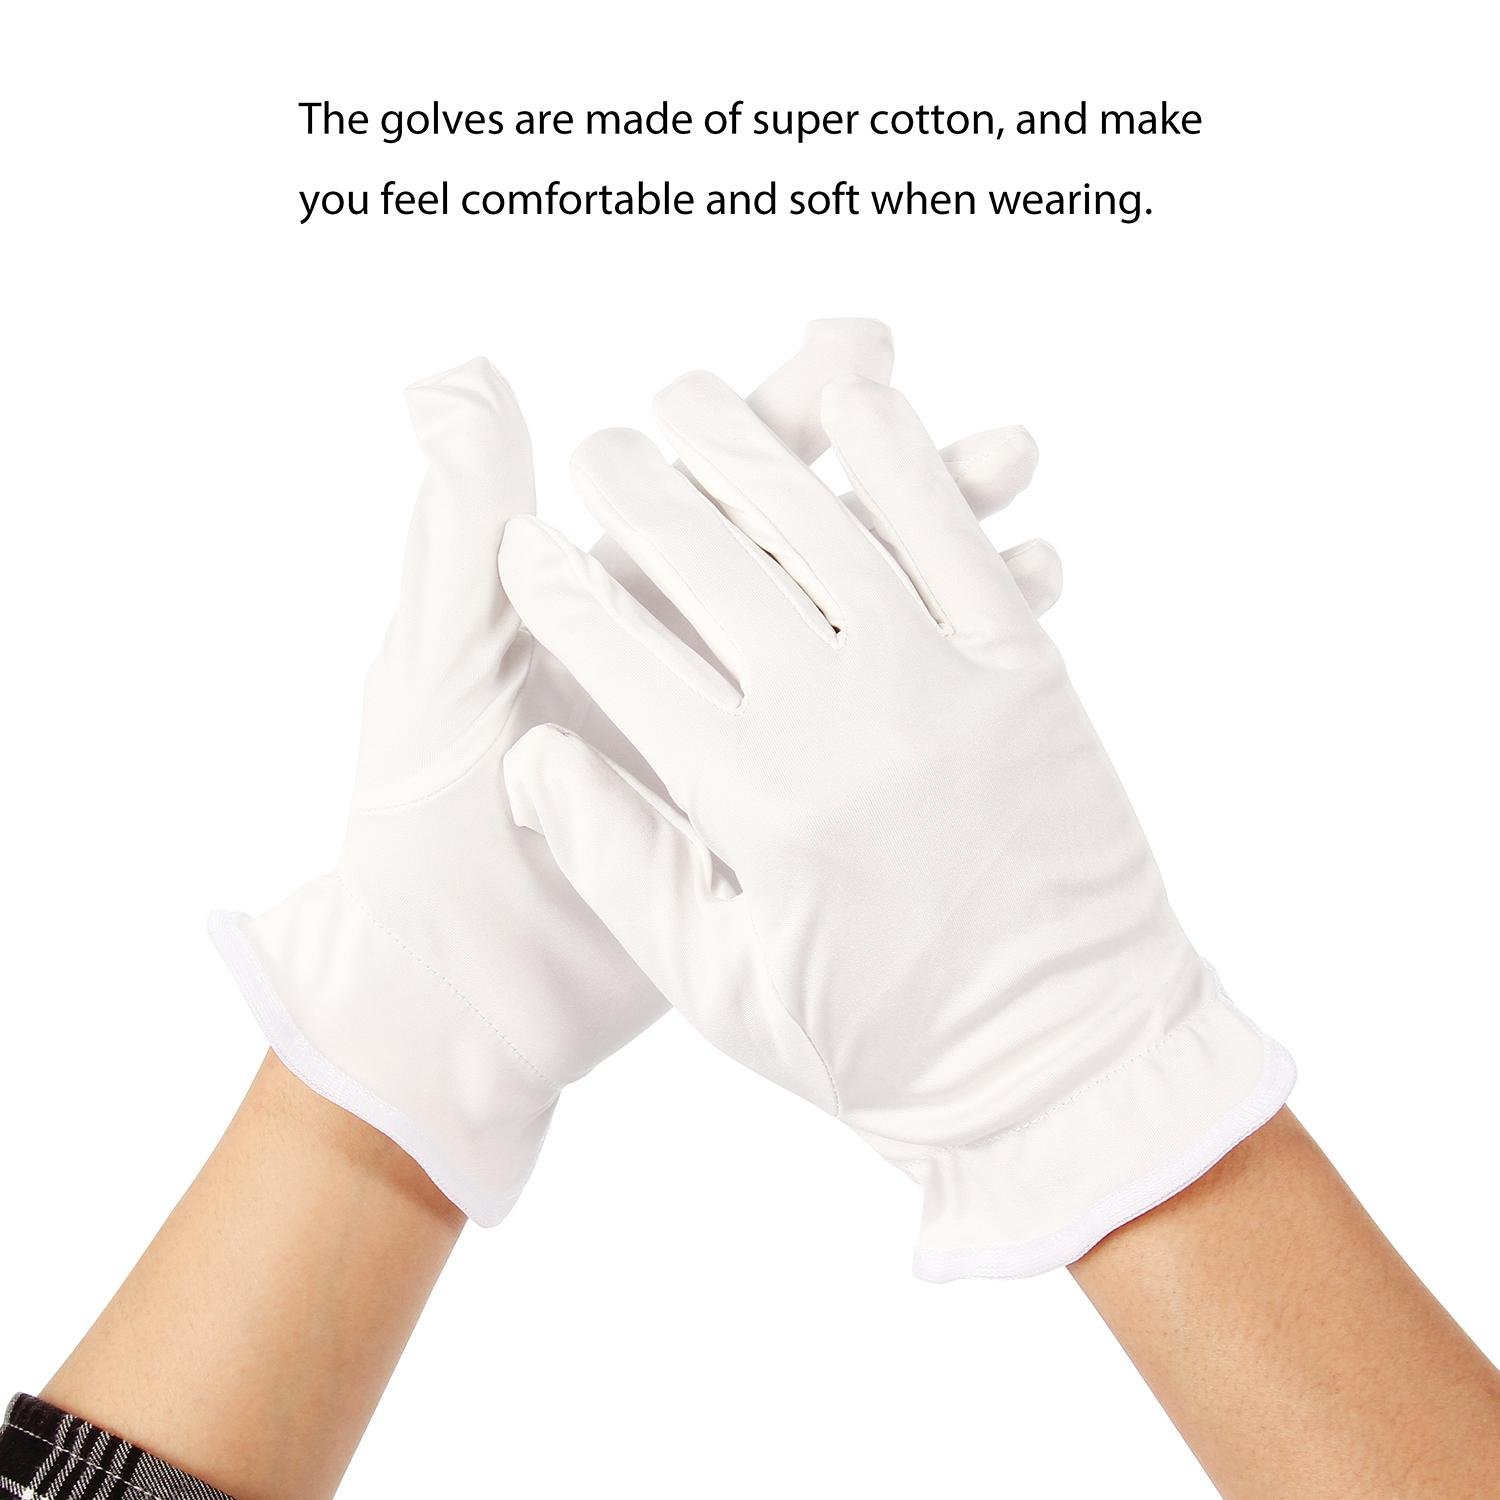 10 Paris White Cotton Gloves, Soft Lightweight Working Gloves for Dry Hands Cosmetic Jewelry Polishing Hand Spa Coins Moisturizing AOLVO